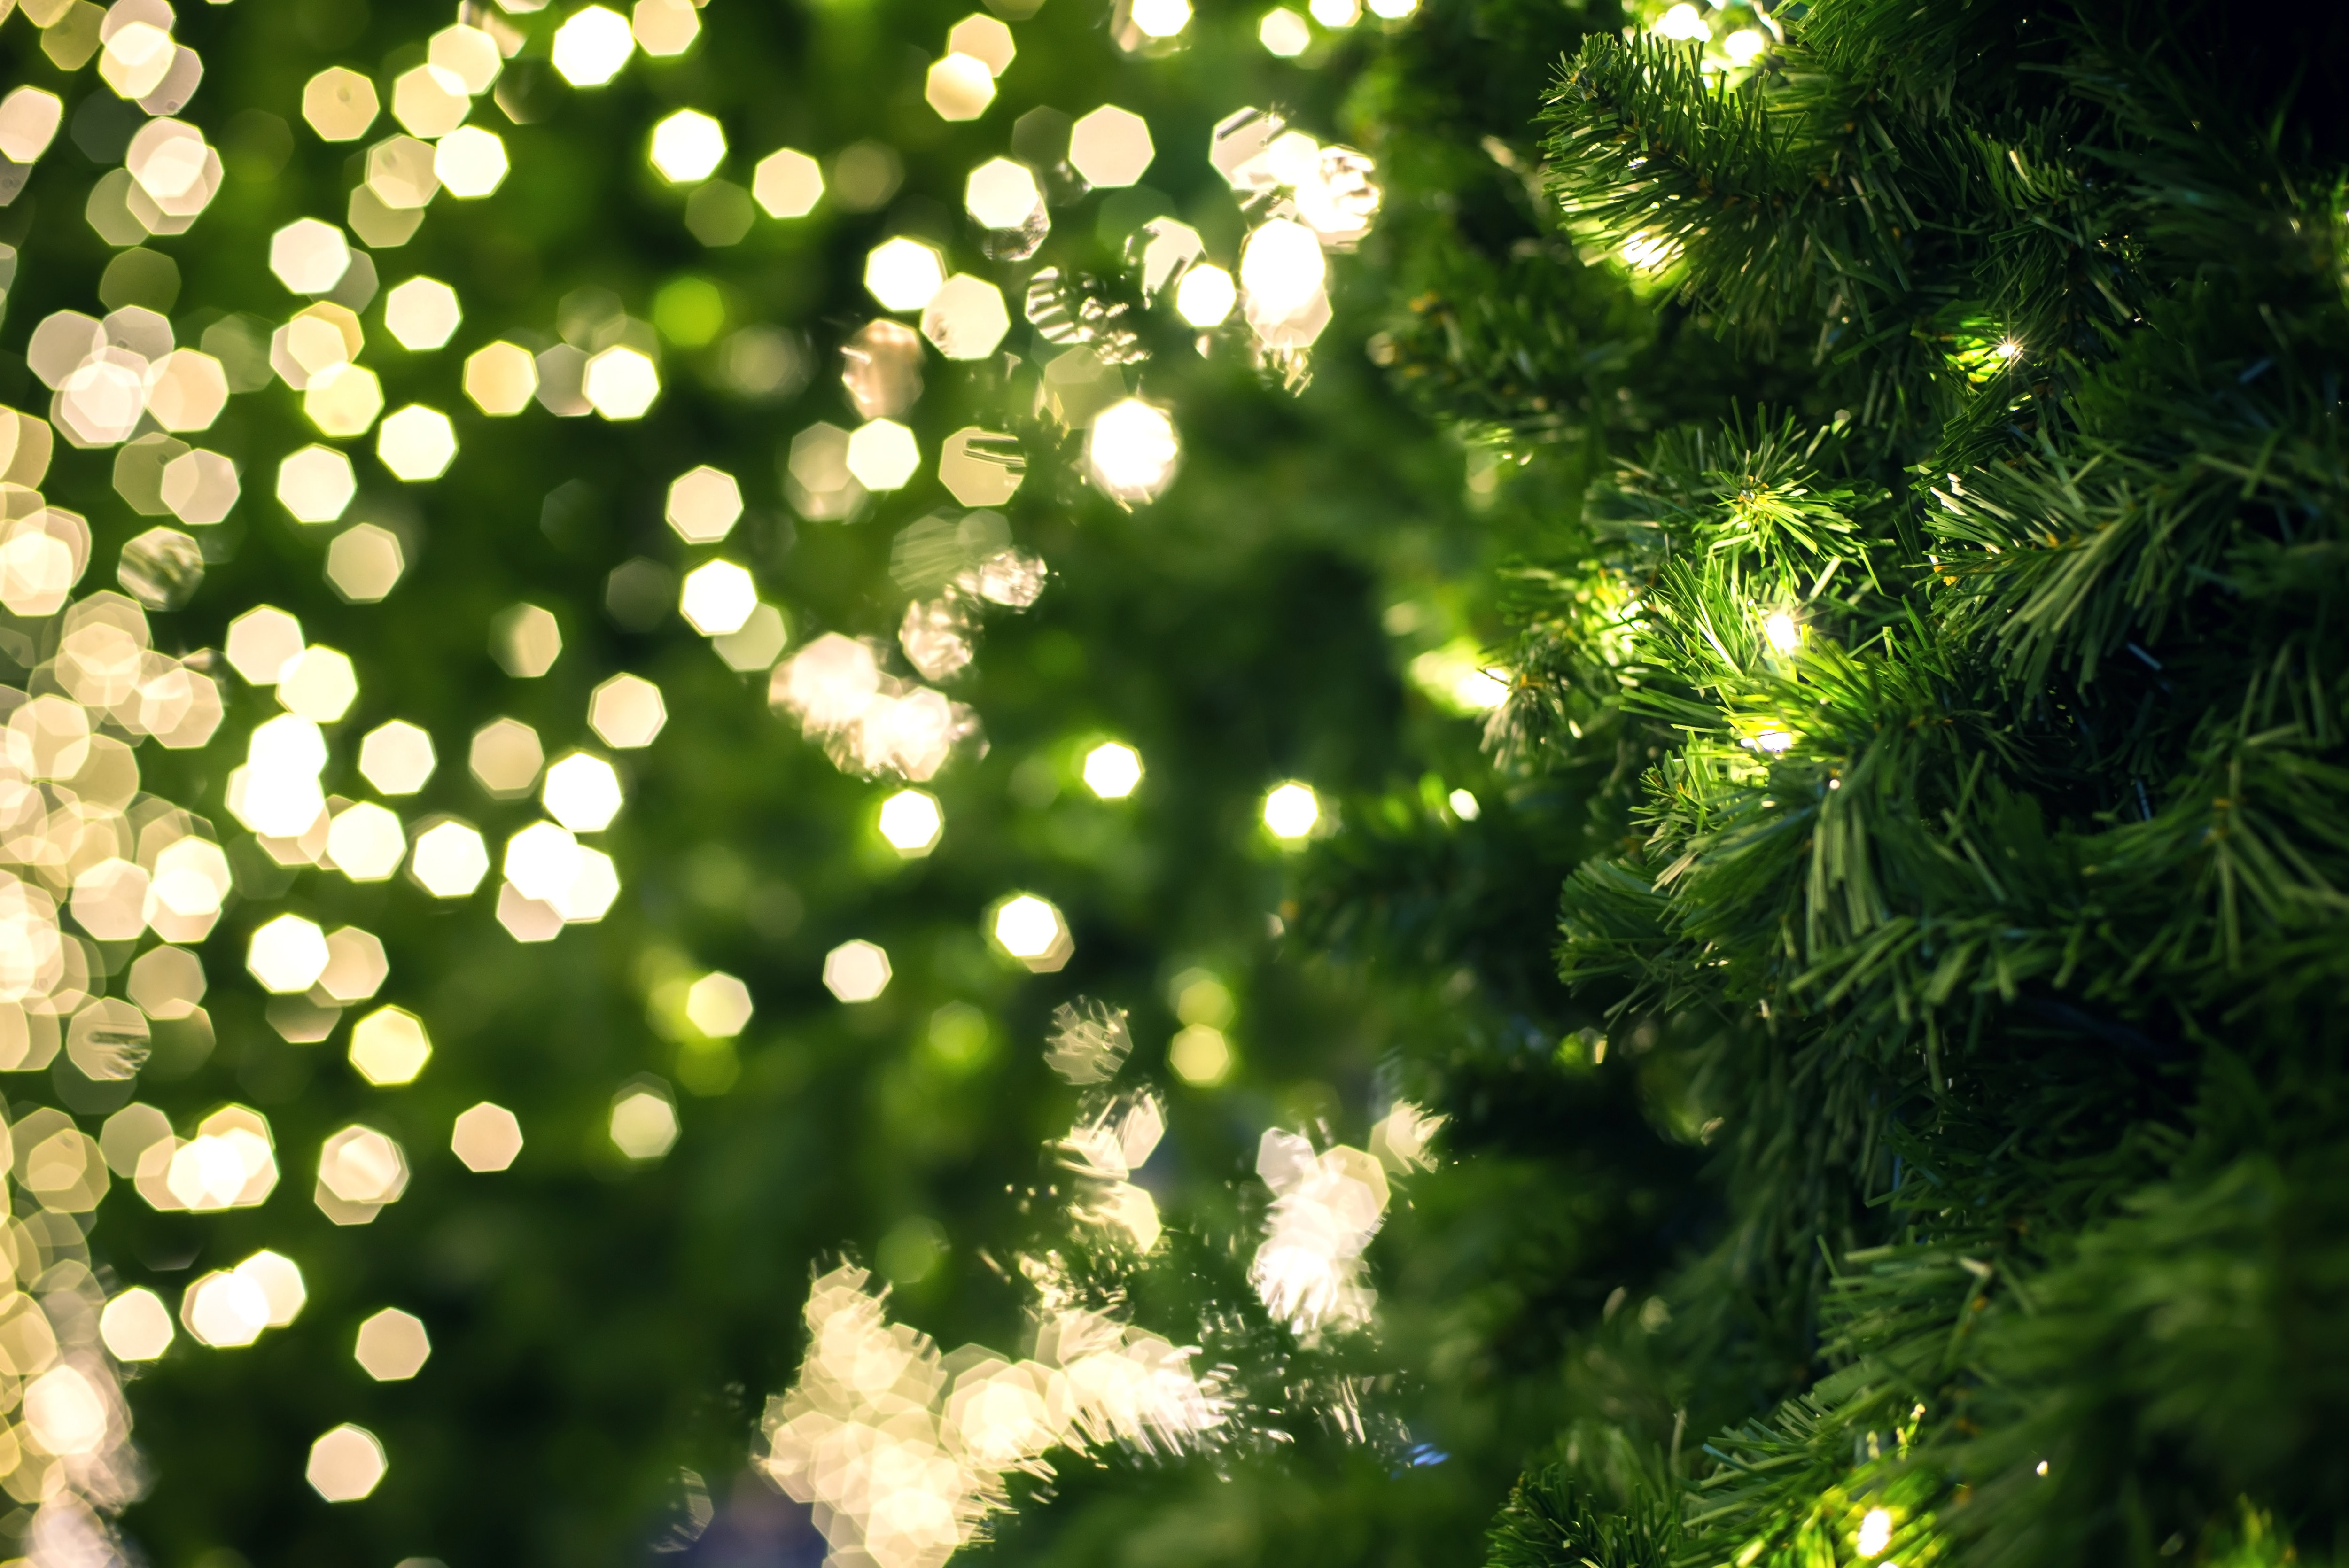 Close up of a green Christmas tree.